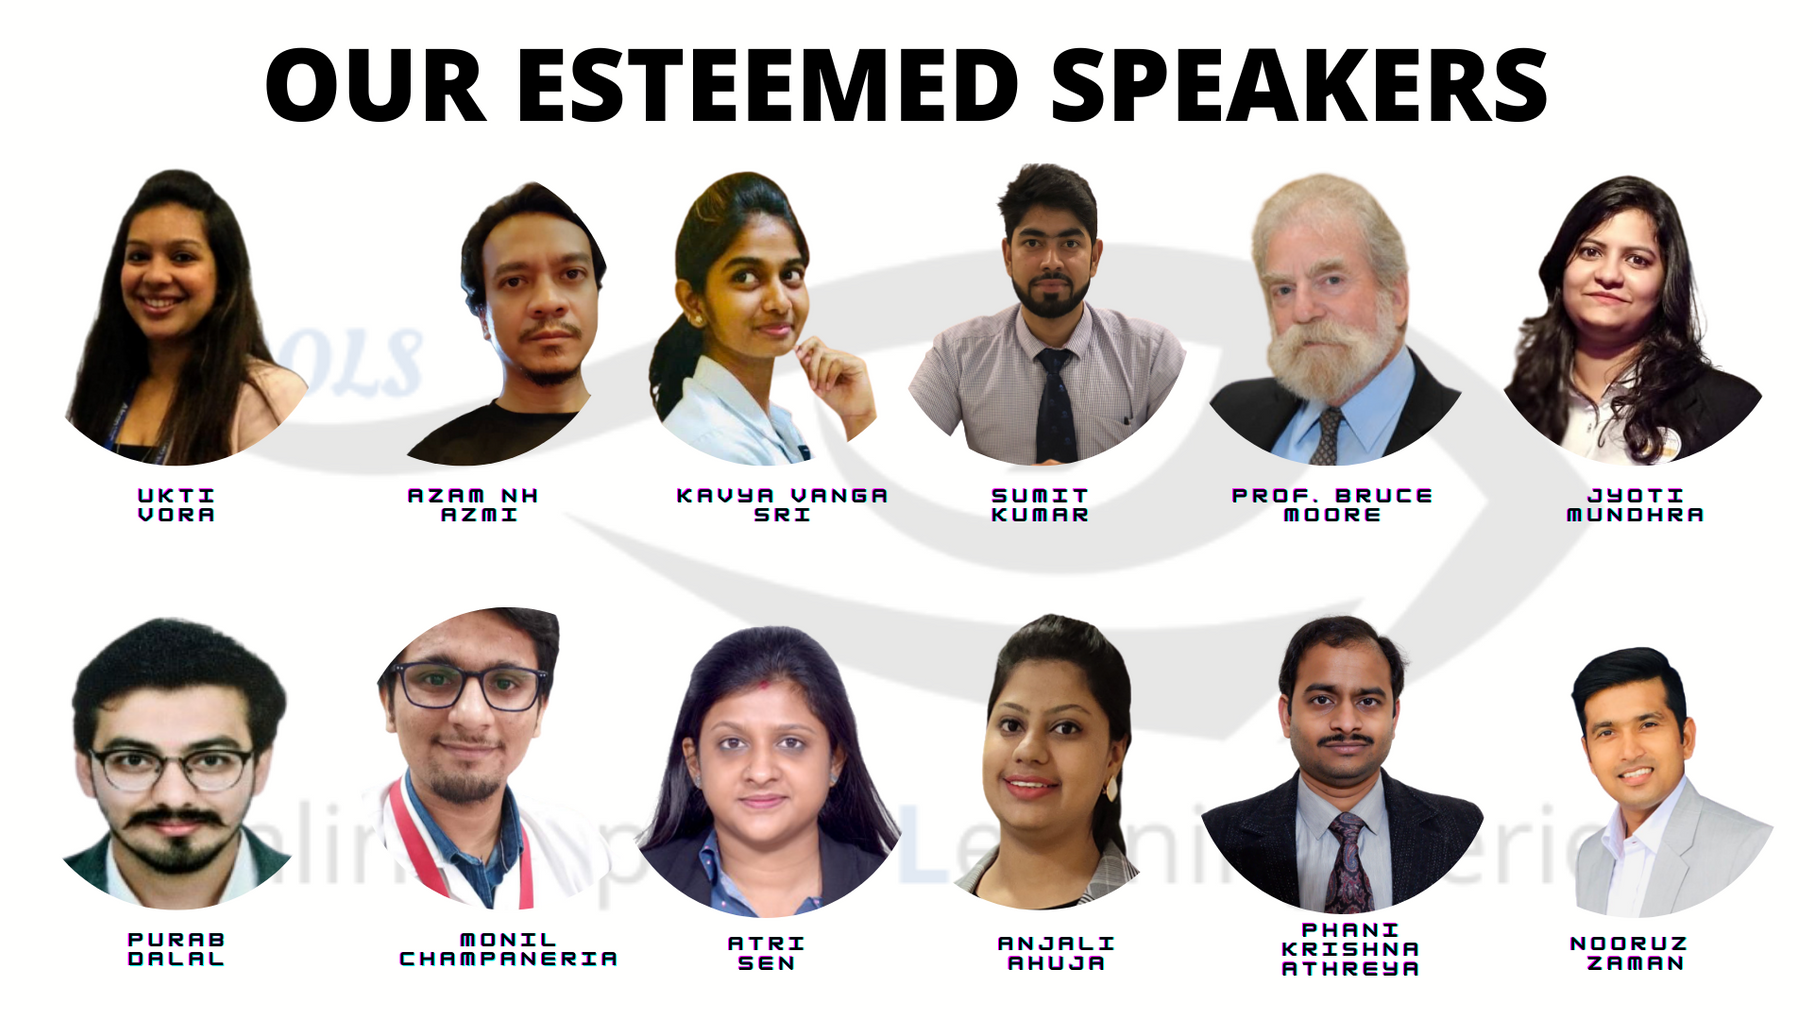 OOLS Esteemed Speakers